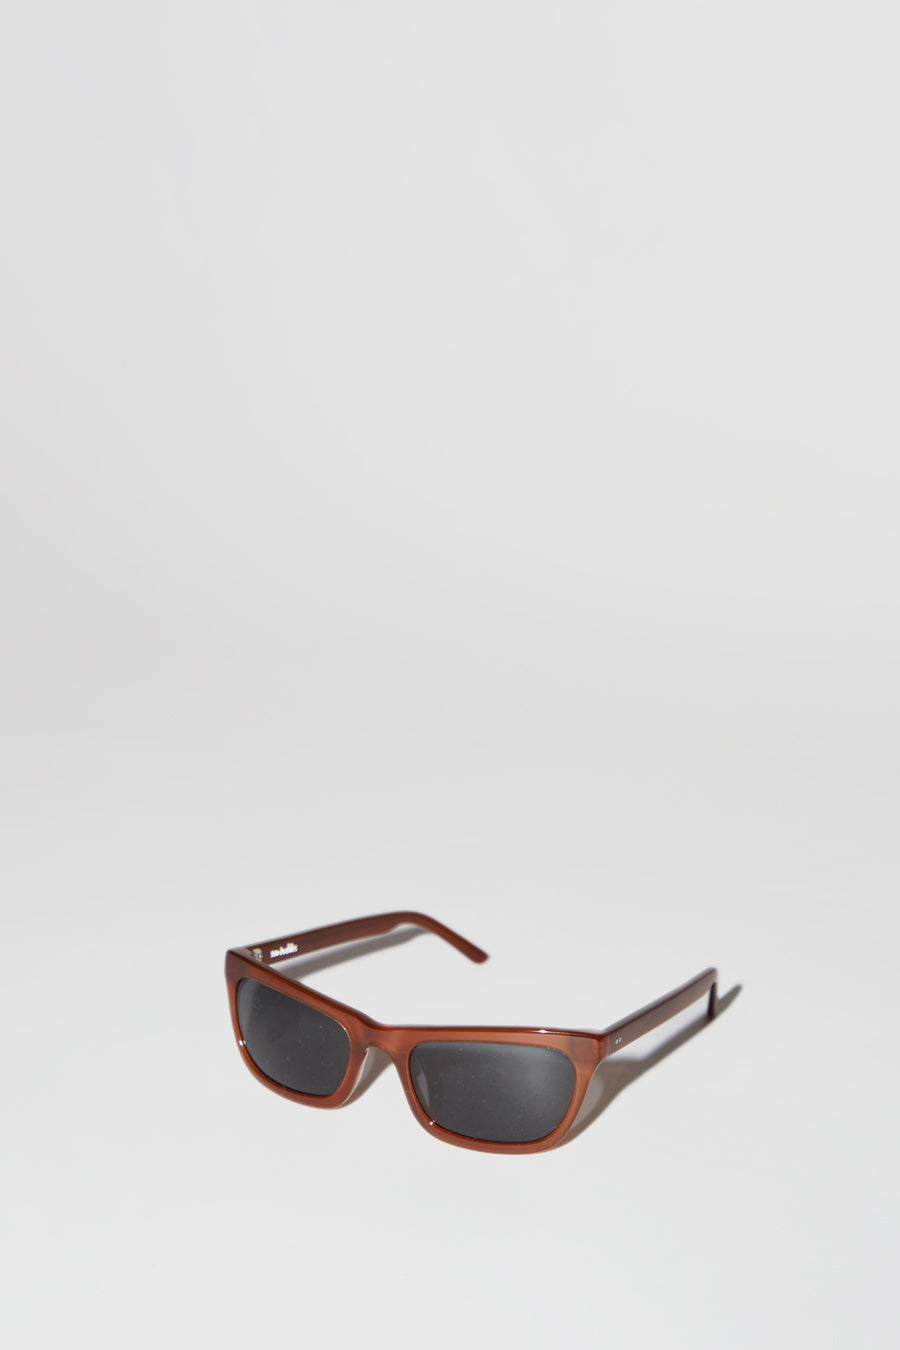 Sun Buddies Harold Sunglasses in Milky Brown